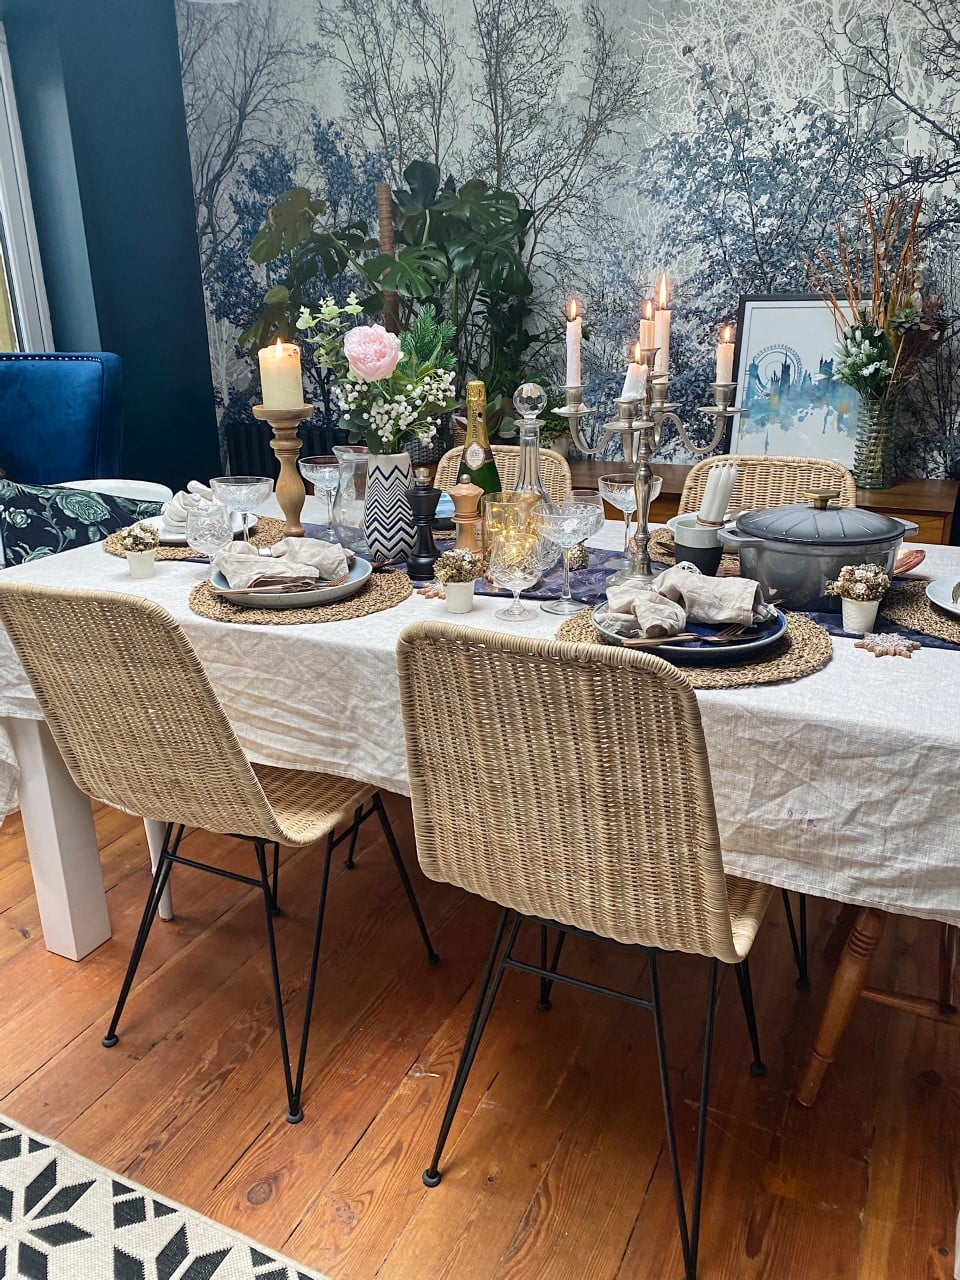 dining table set up for a christmas dinner with forest wallpaper mural and rattan dining chairs